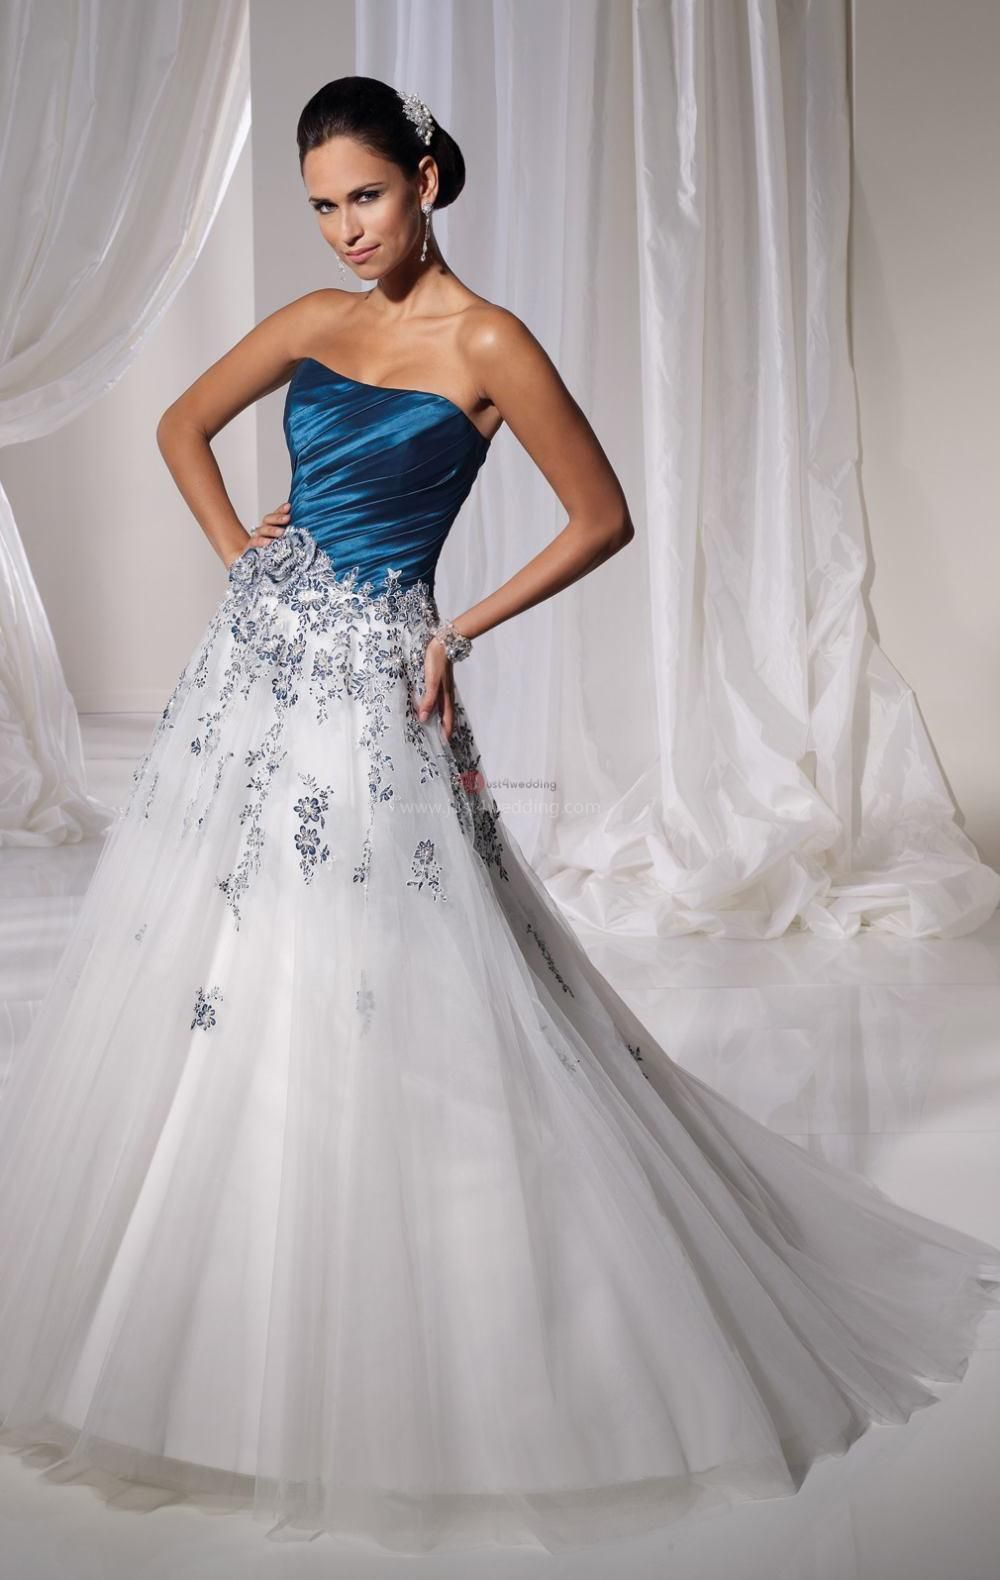 A light blue or turquoise sash would look absolutely gorgeous on a white wedding dress  future